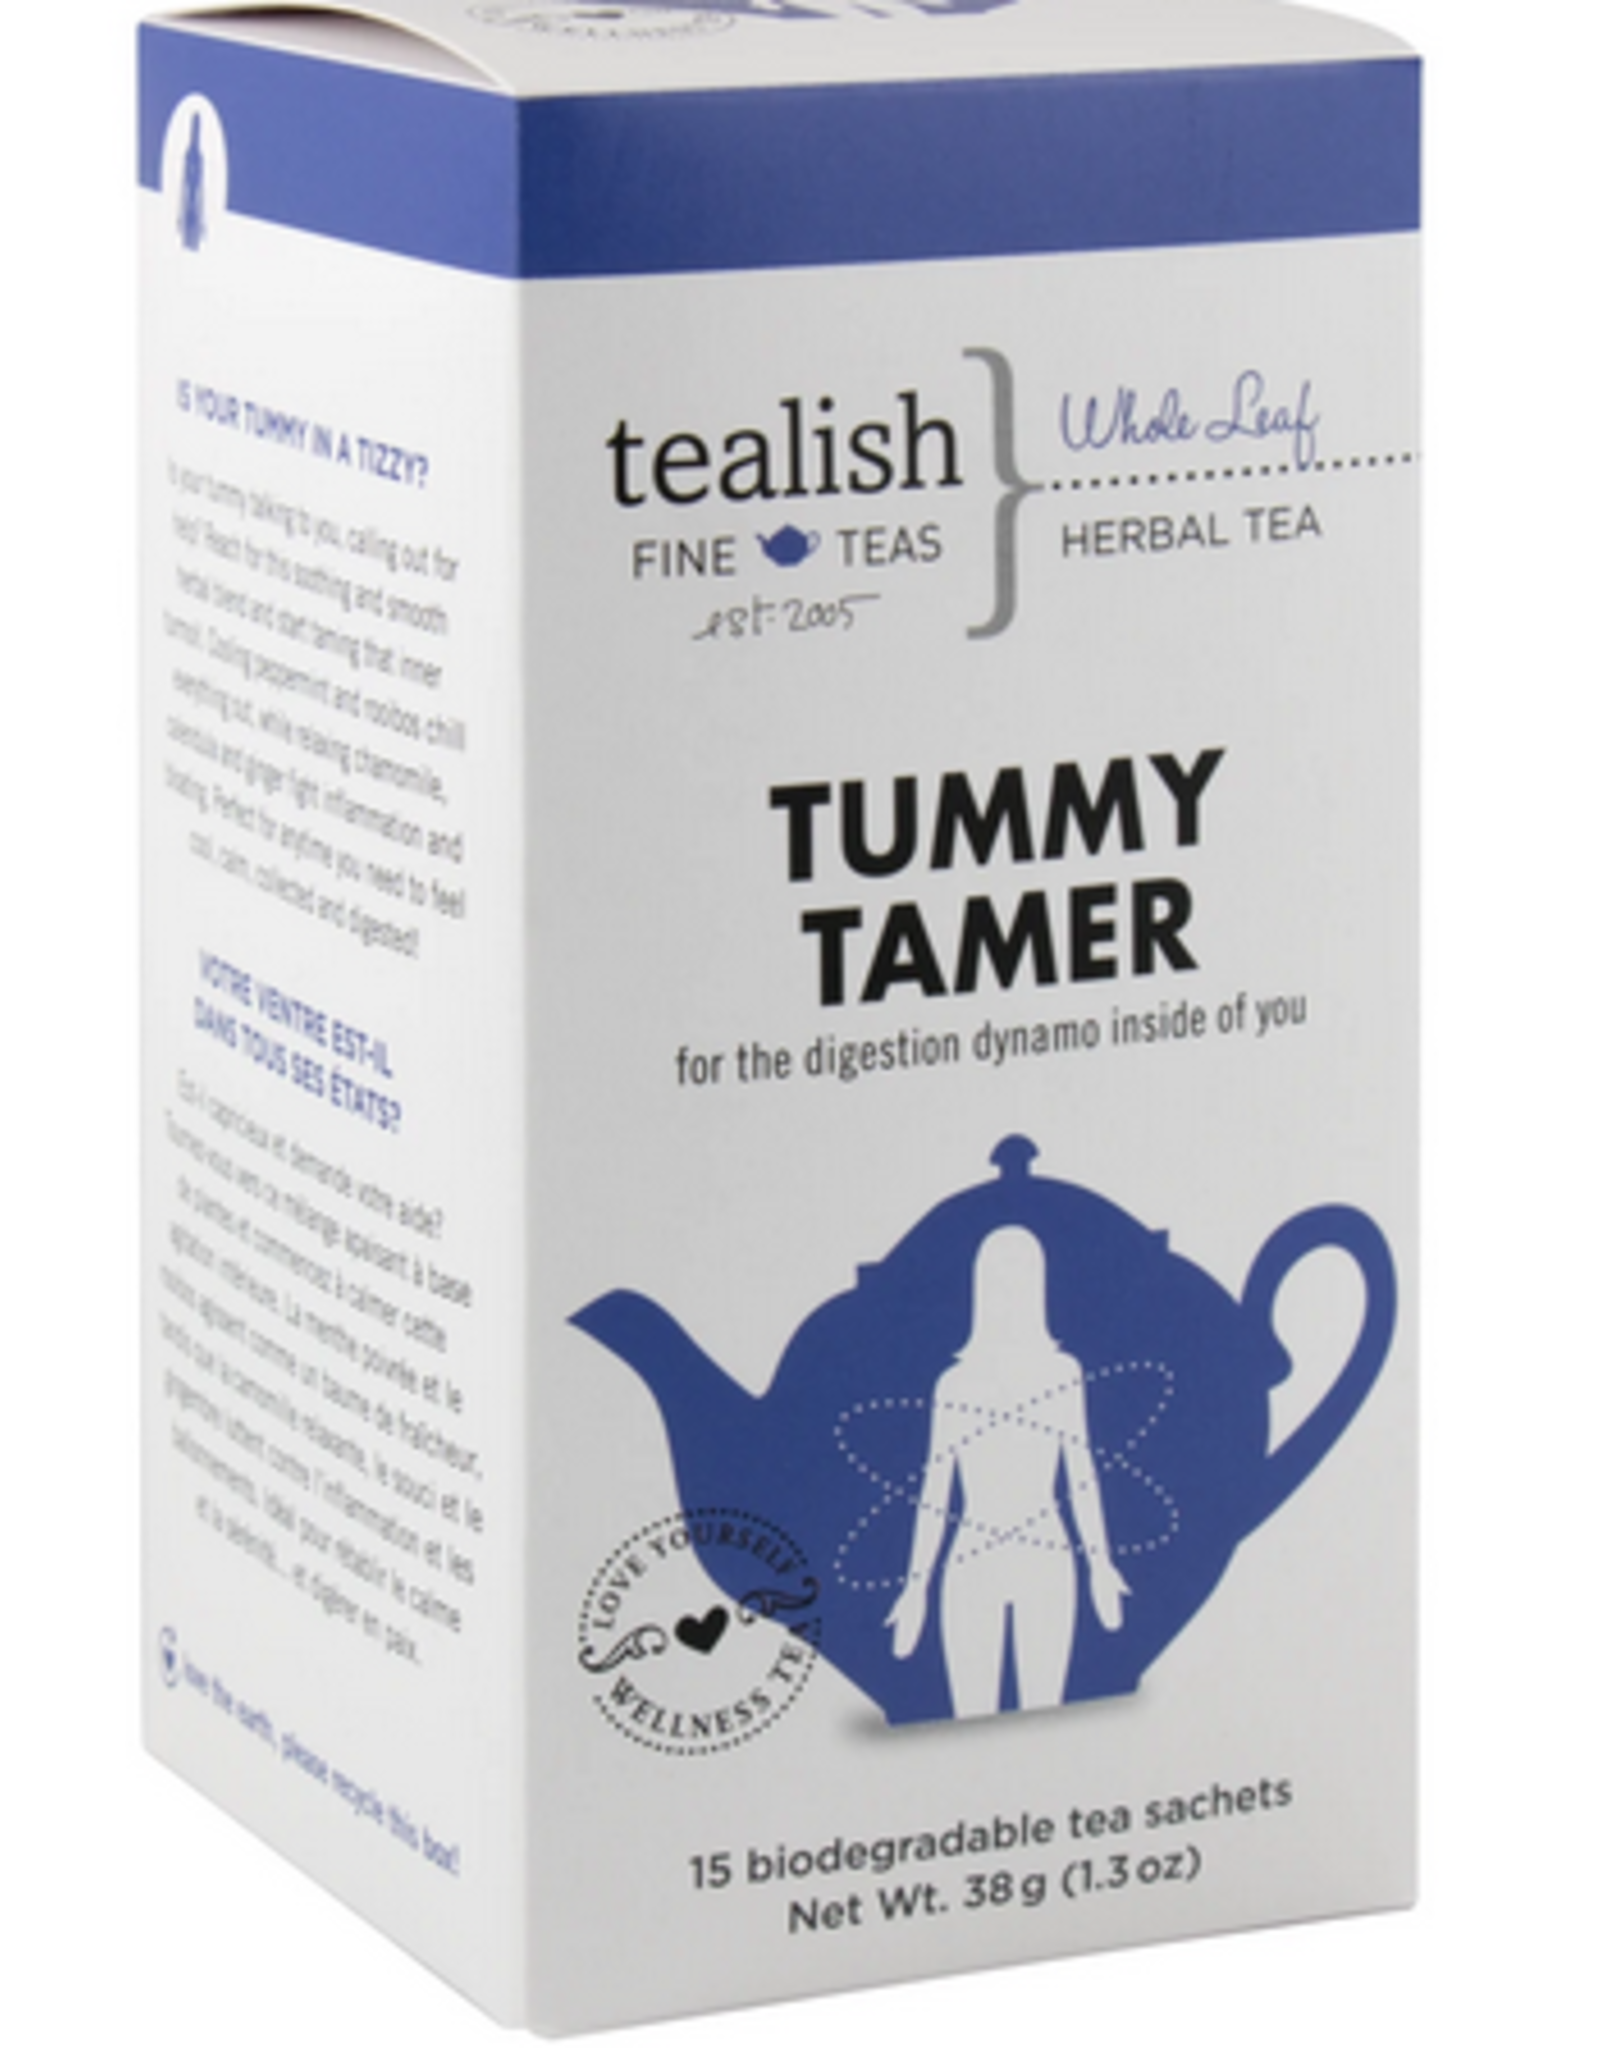 Tummy Tamer - Teabox